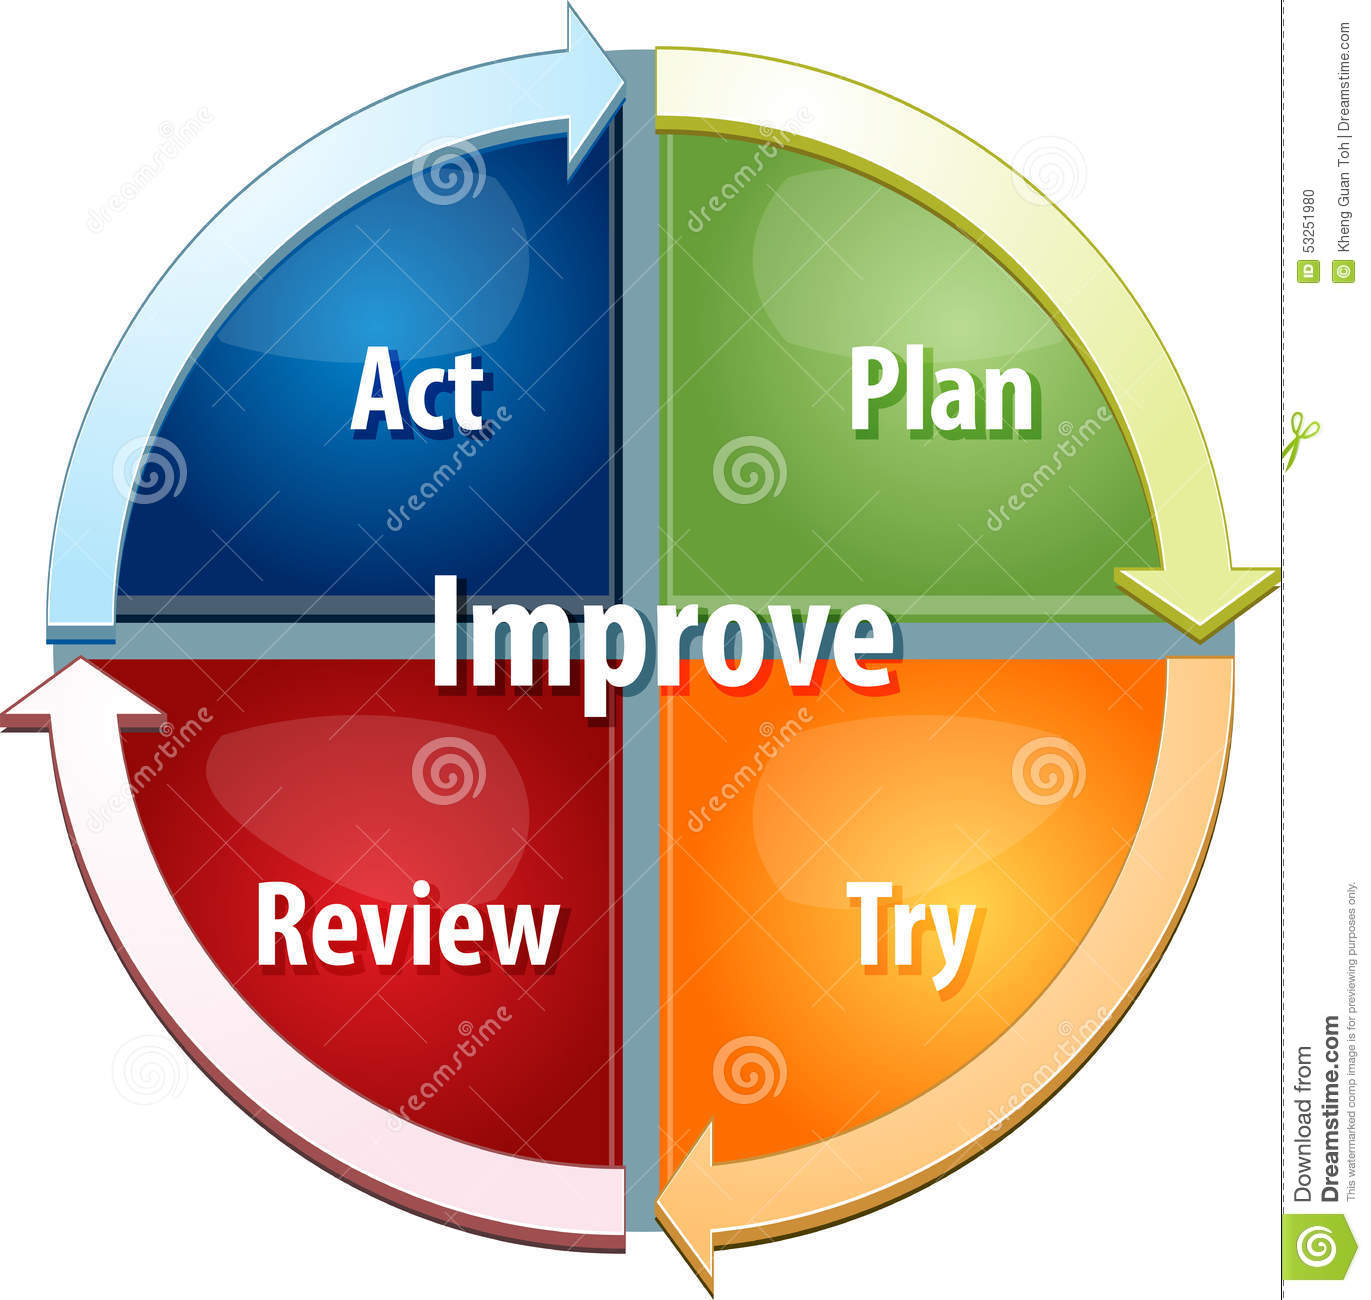 performance improvement cycle diagram what does a cell look like process business illustration stock